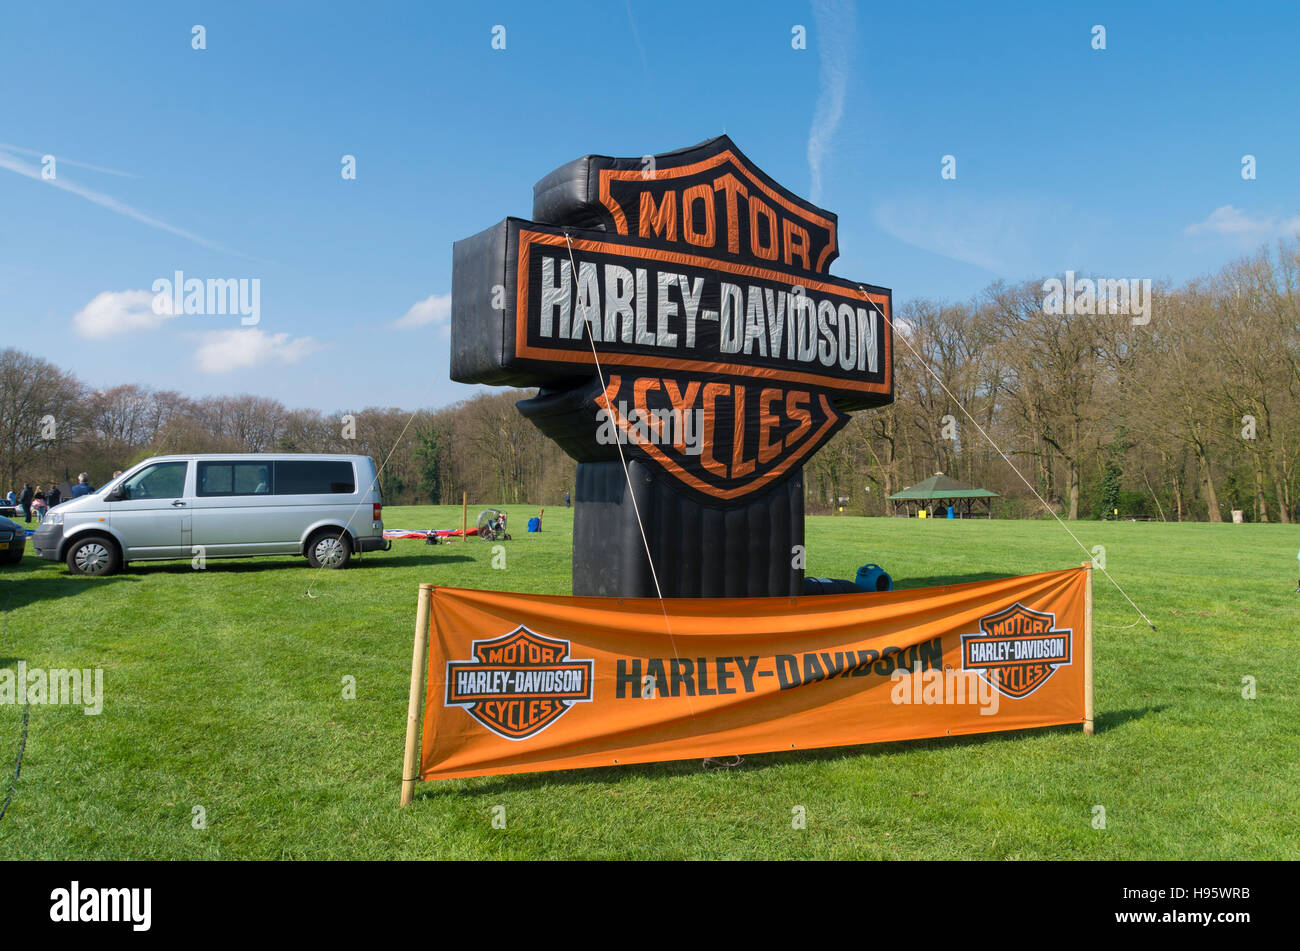 oldenzaal, netherlands - april 10, 2016: harley-davidson banner